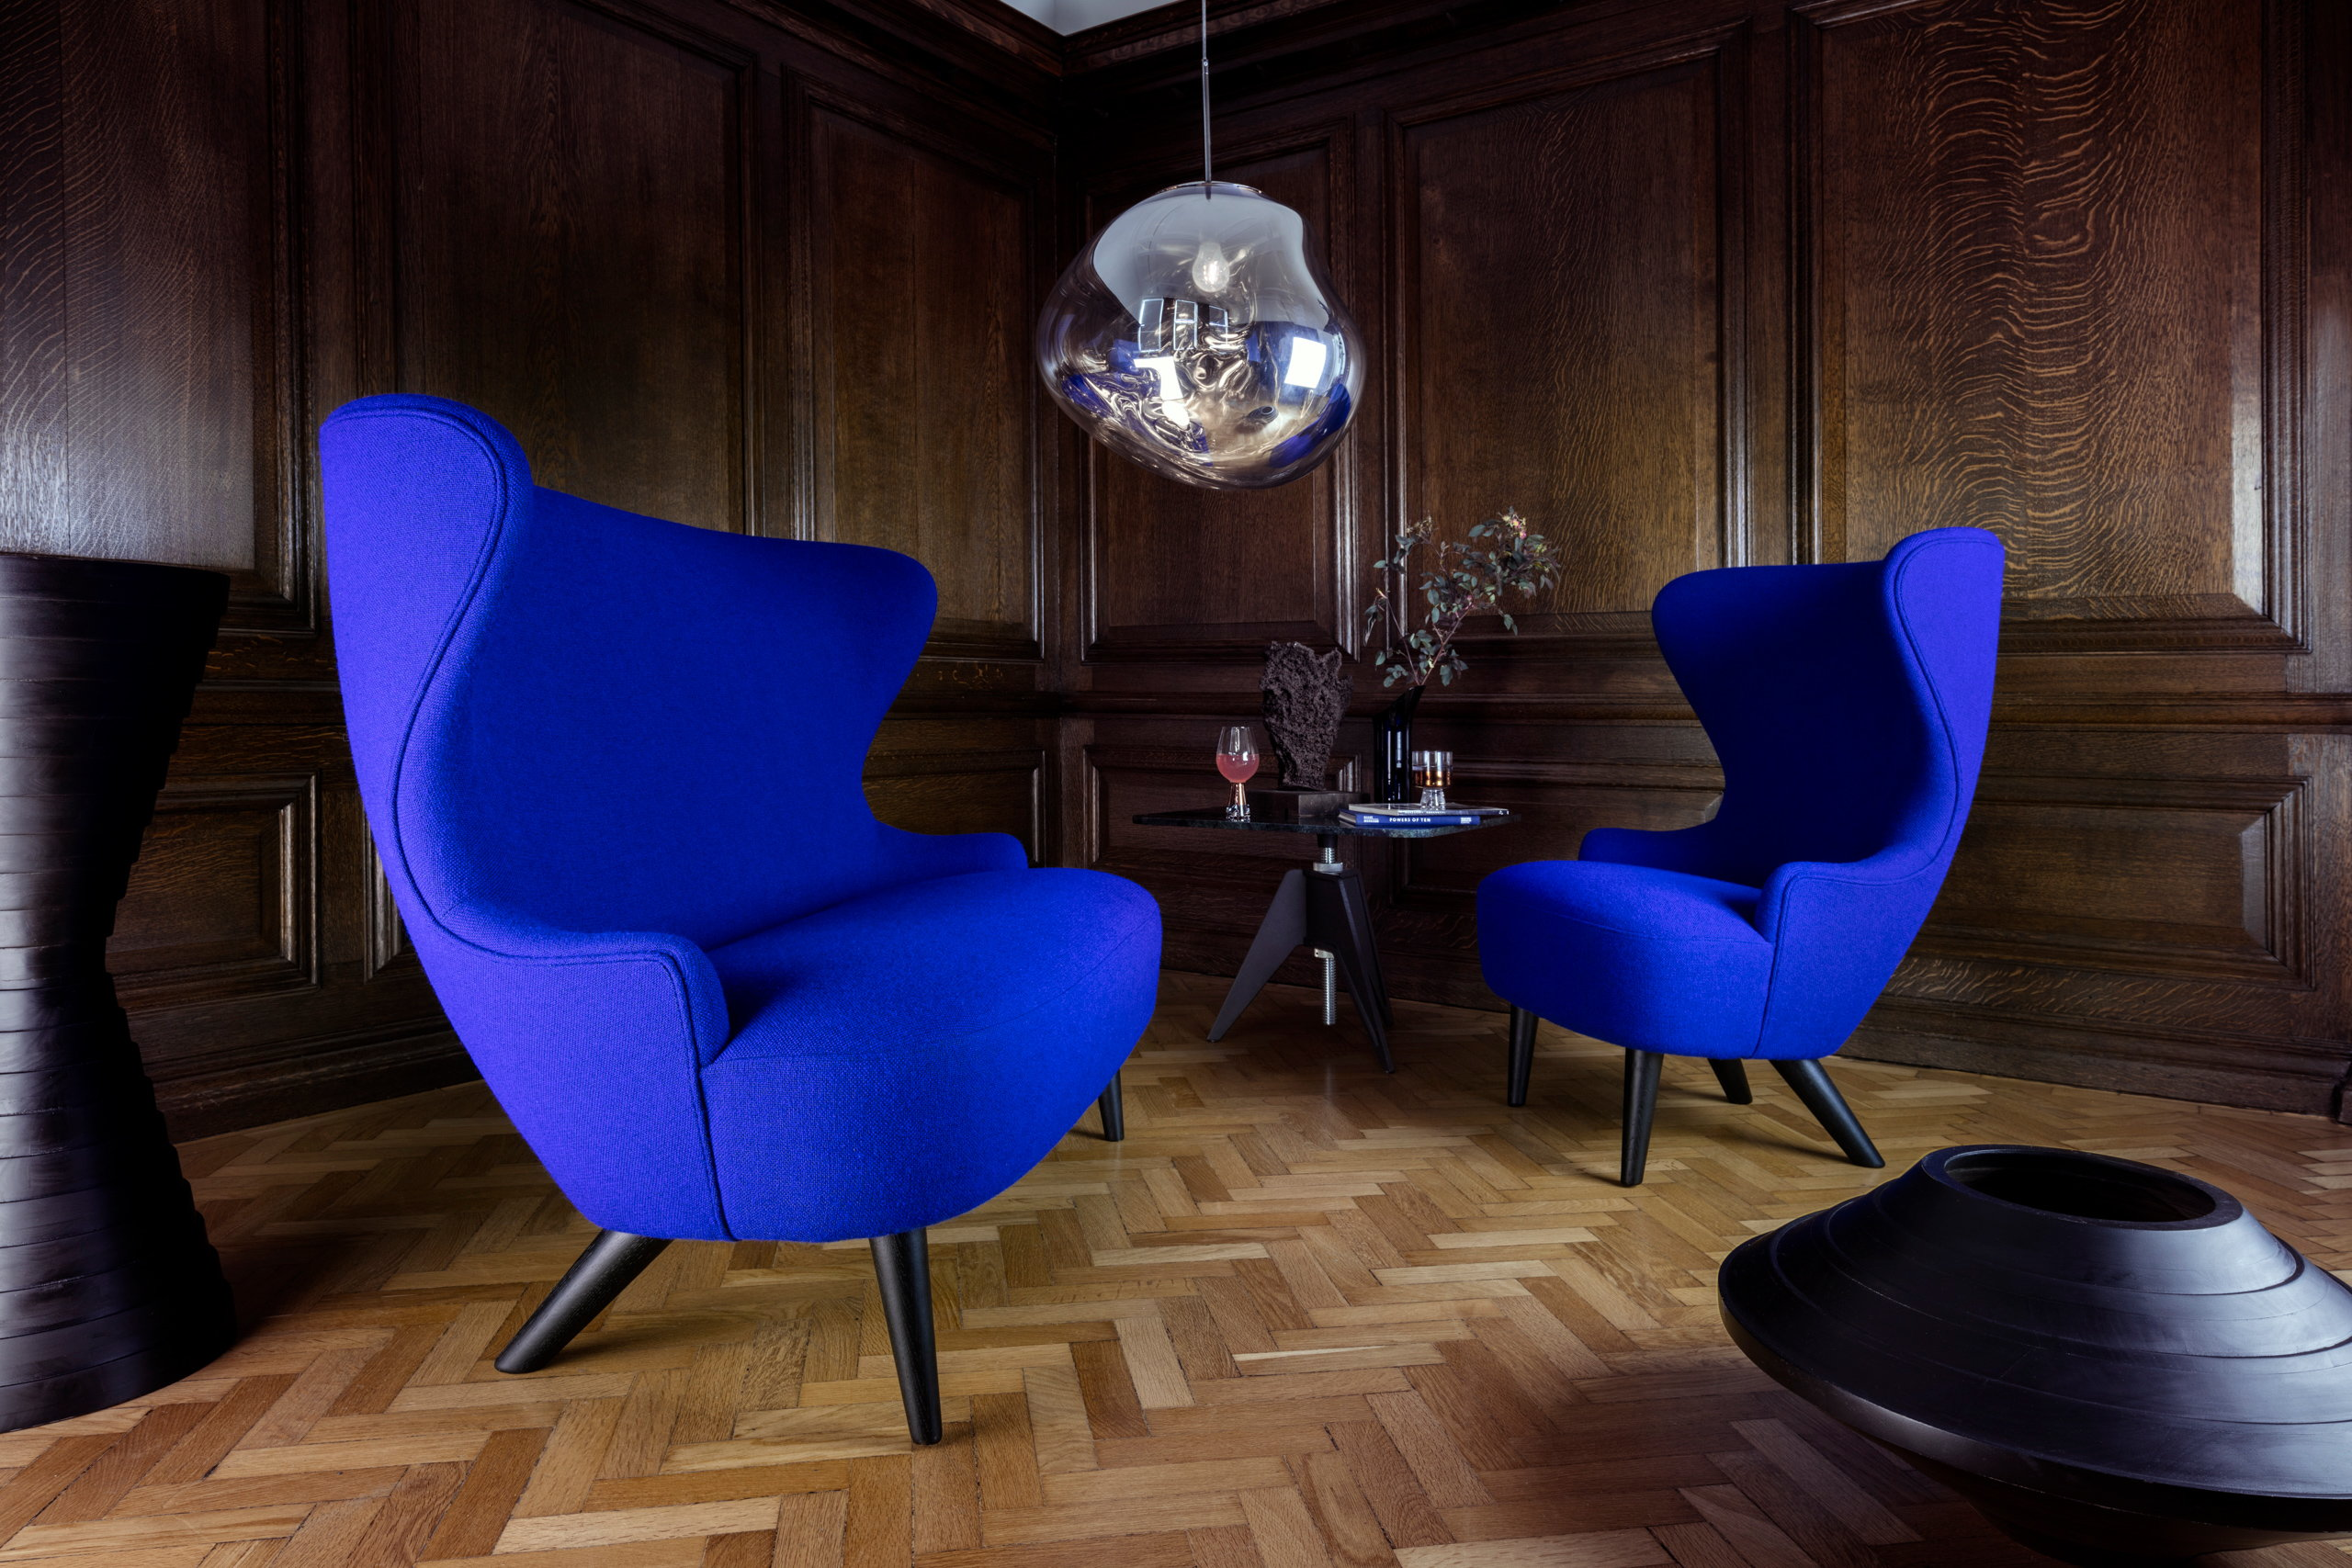 20 Modern Armchairs For A Bold And Timeless Design modern armchairs 20 Modern Armchairs For A Bold And Timeless Design 20 Modern Armchairs For A Bold And Timeless Design18